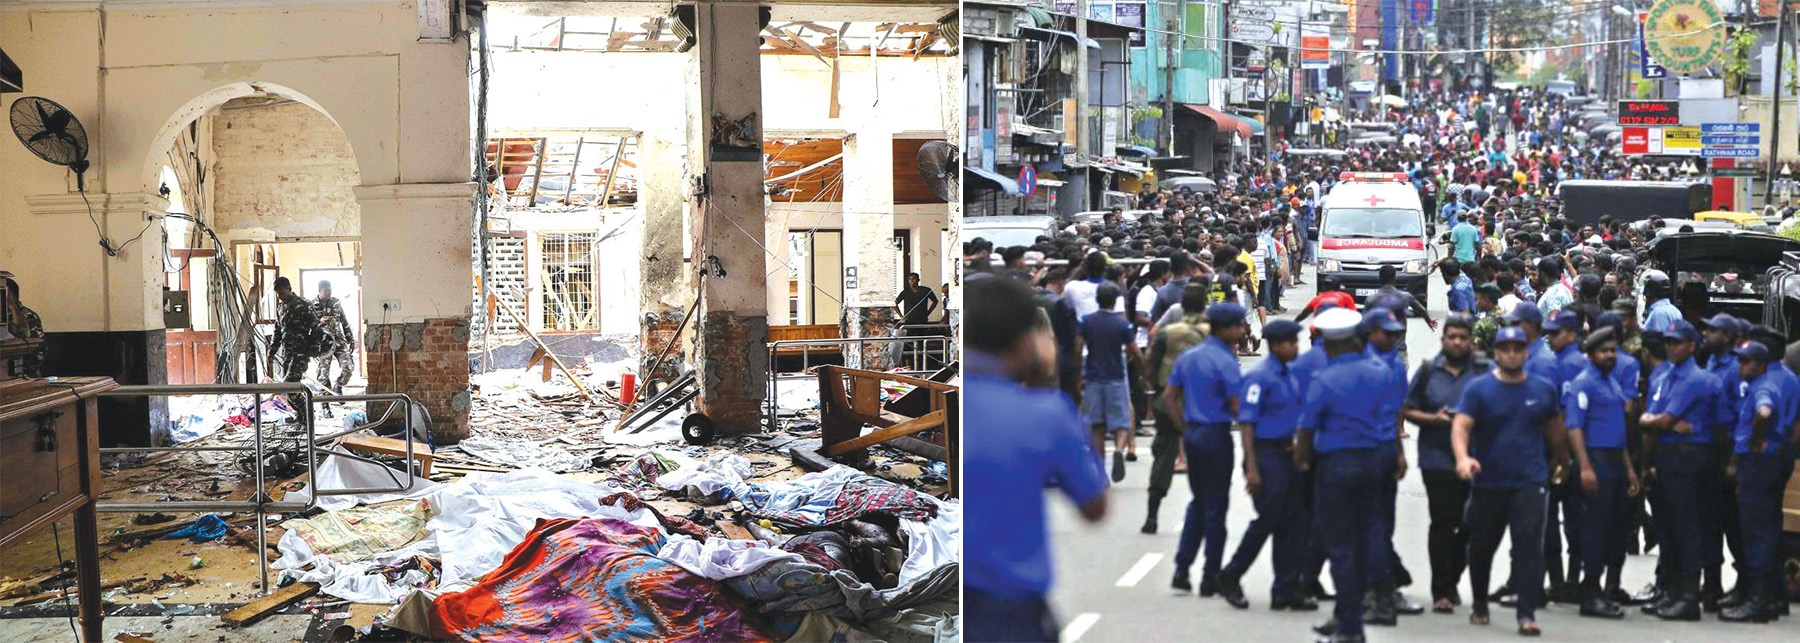 bomb blasts, claimed the lives, St. Anthony's Church, curfew, condemned the attacks, ww3, Sri Lanka, India